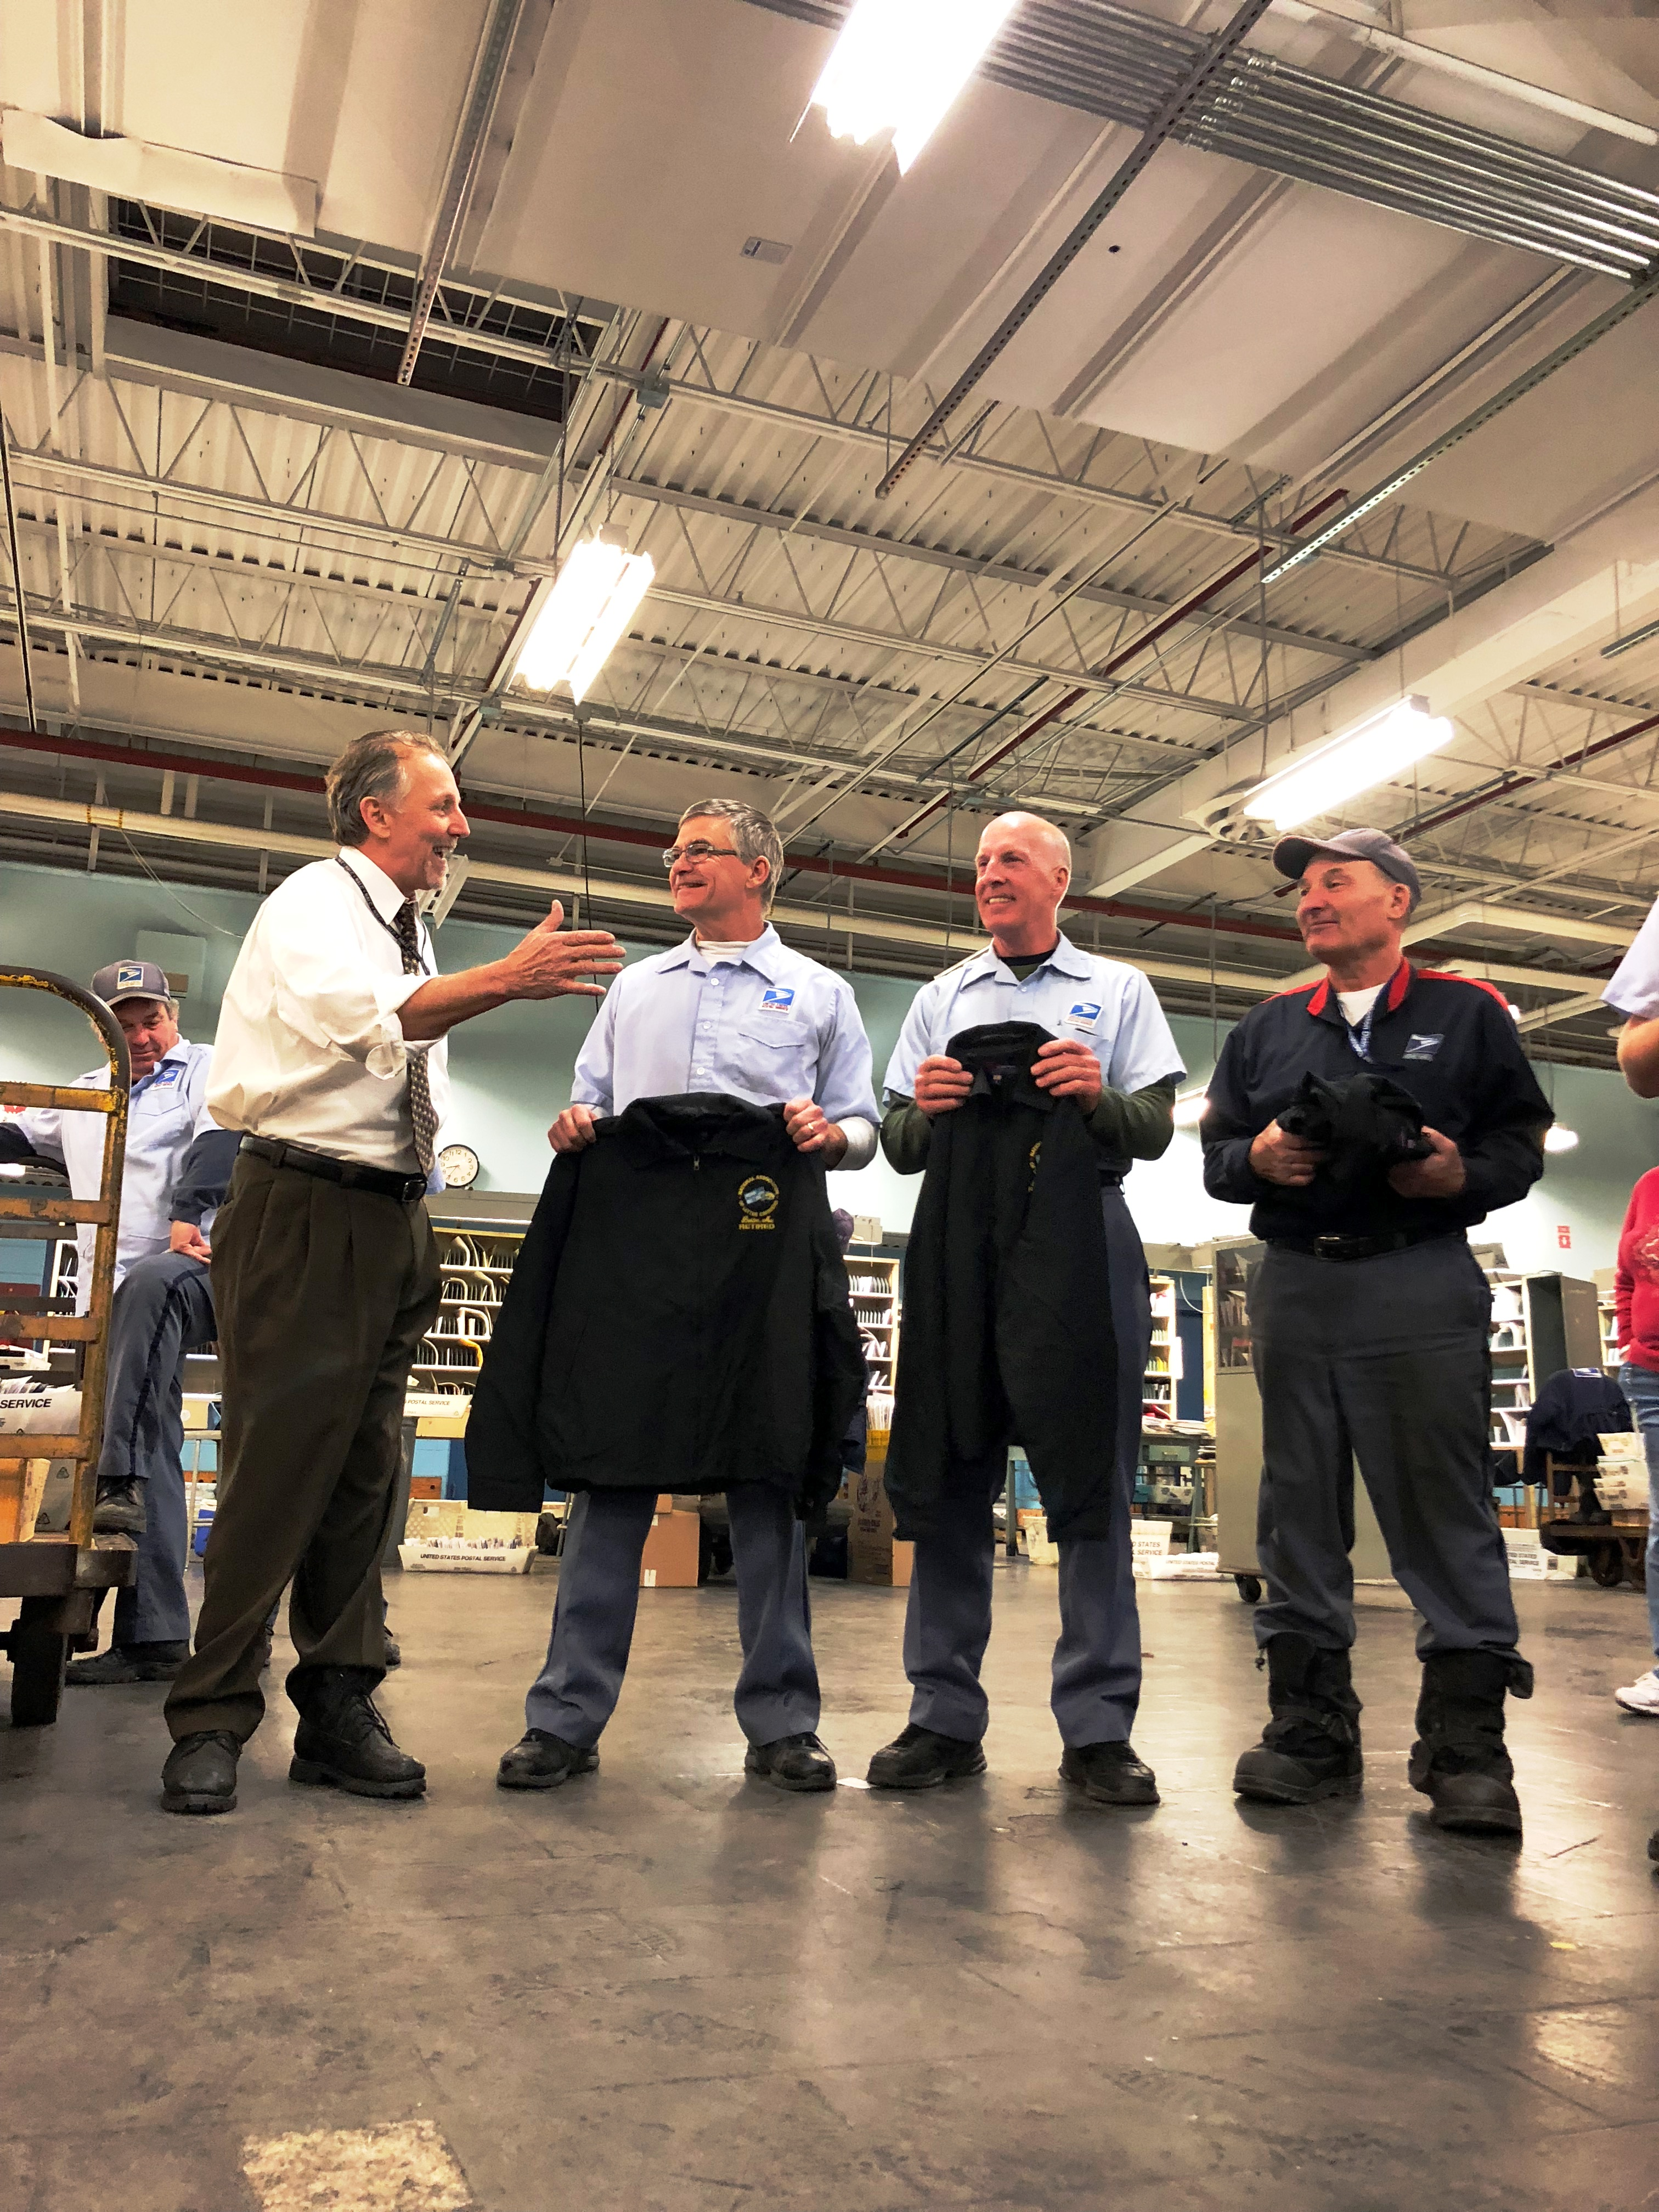 Branch President Mike Yerkes present jackets to Woburn's Big Three, Bill Shea, Tom Hoctor and Bob Cusolito on their last day of service.